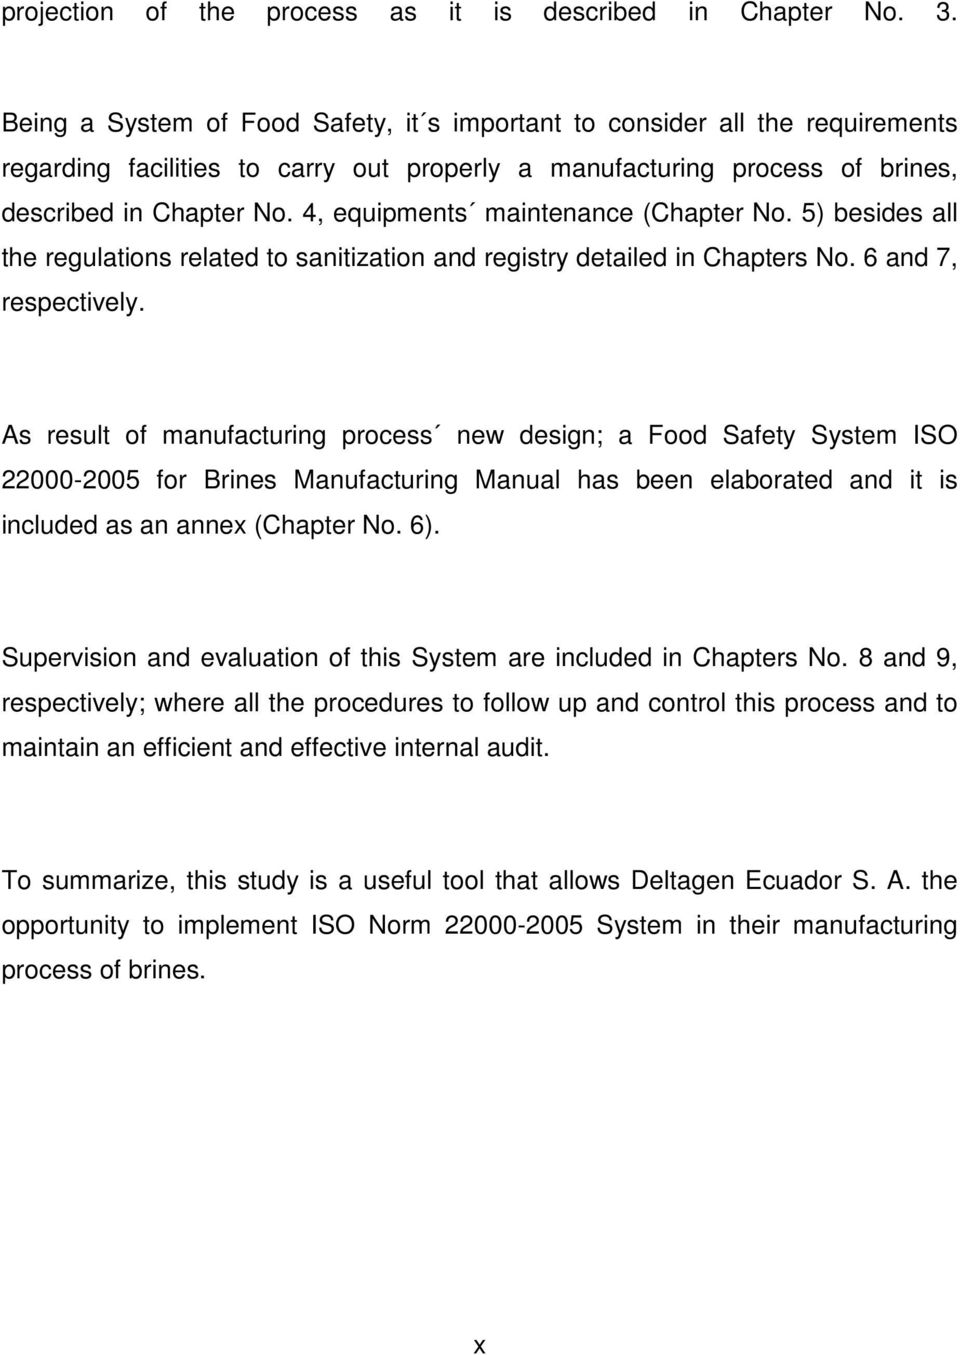 4, equipments maintenance (Chapter No. 5) besides all the regulations related to sanitization and registry detailed in Chapters No. 6 and 7, respectively.